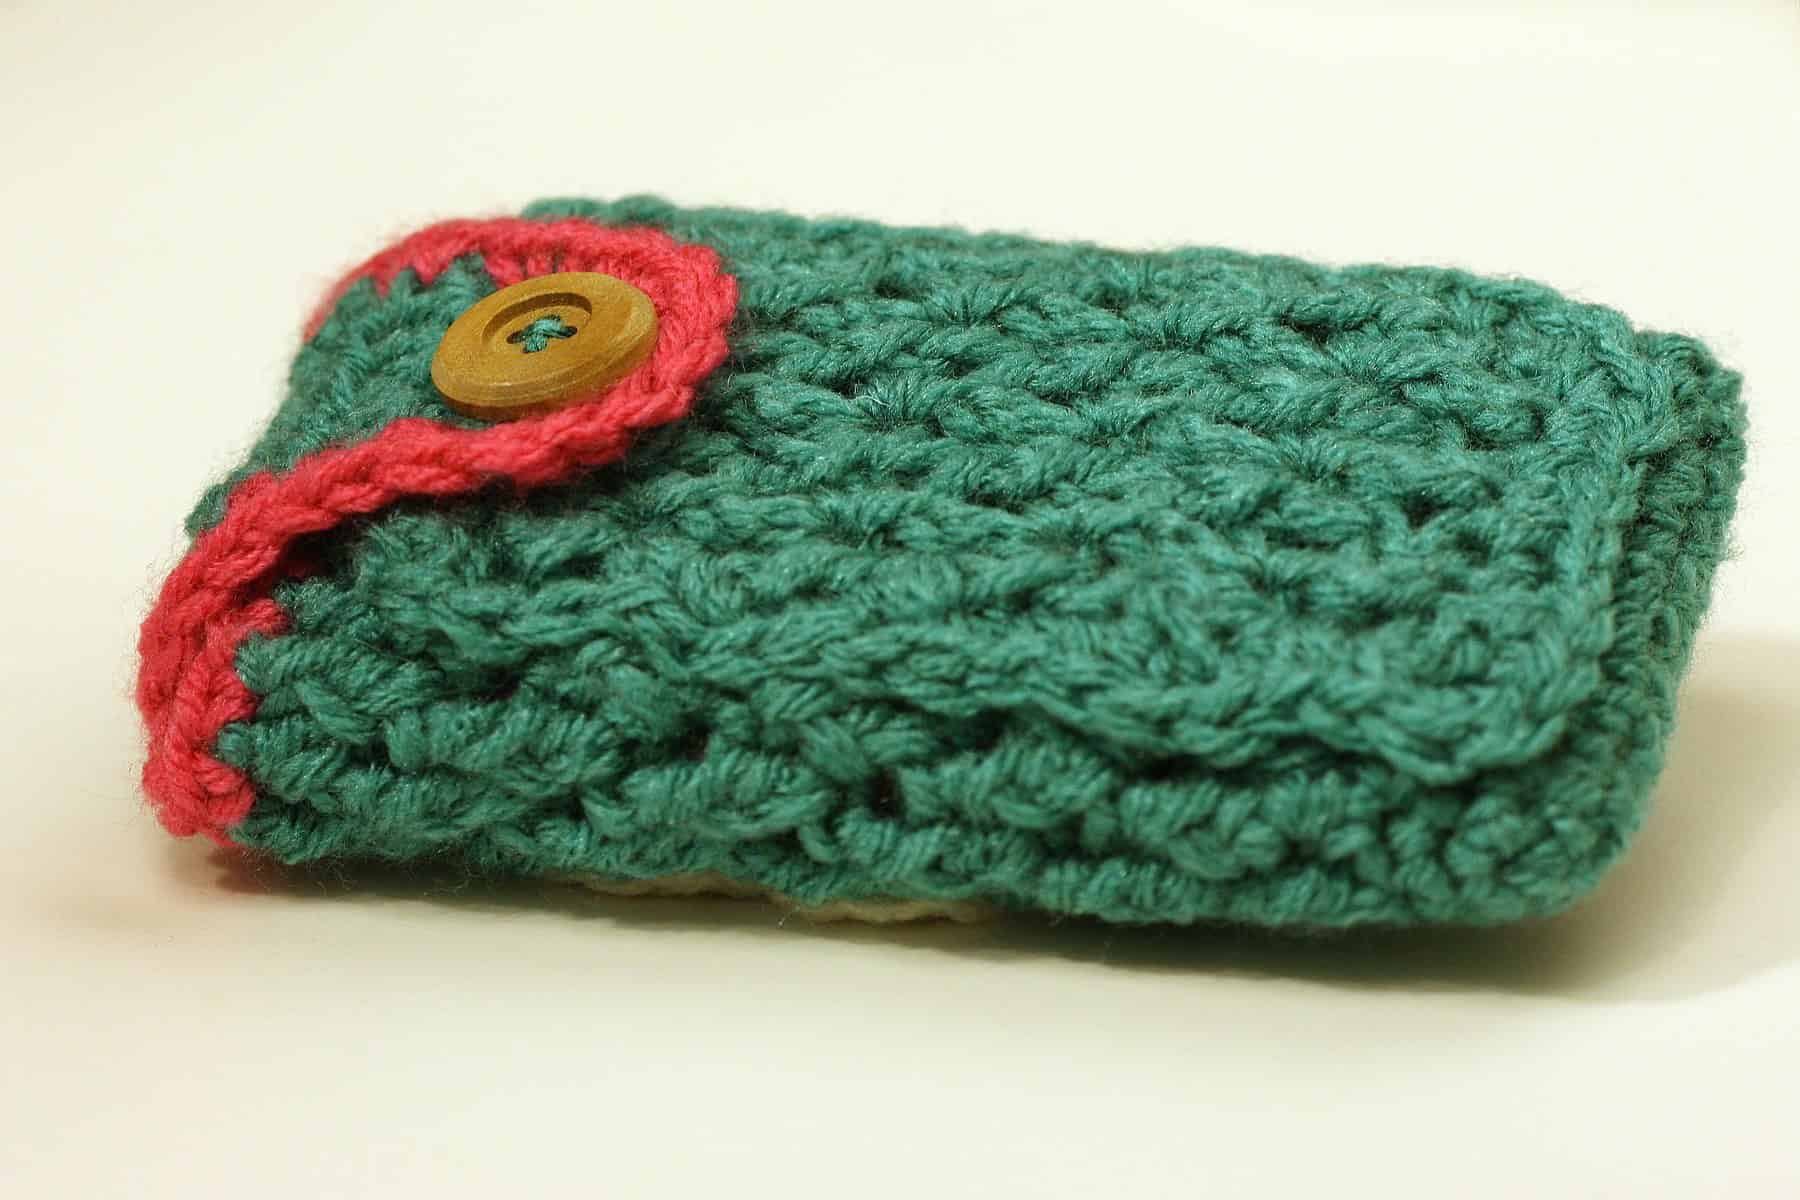 Crochet cell phone case with a pocket